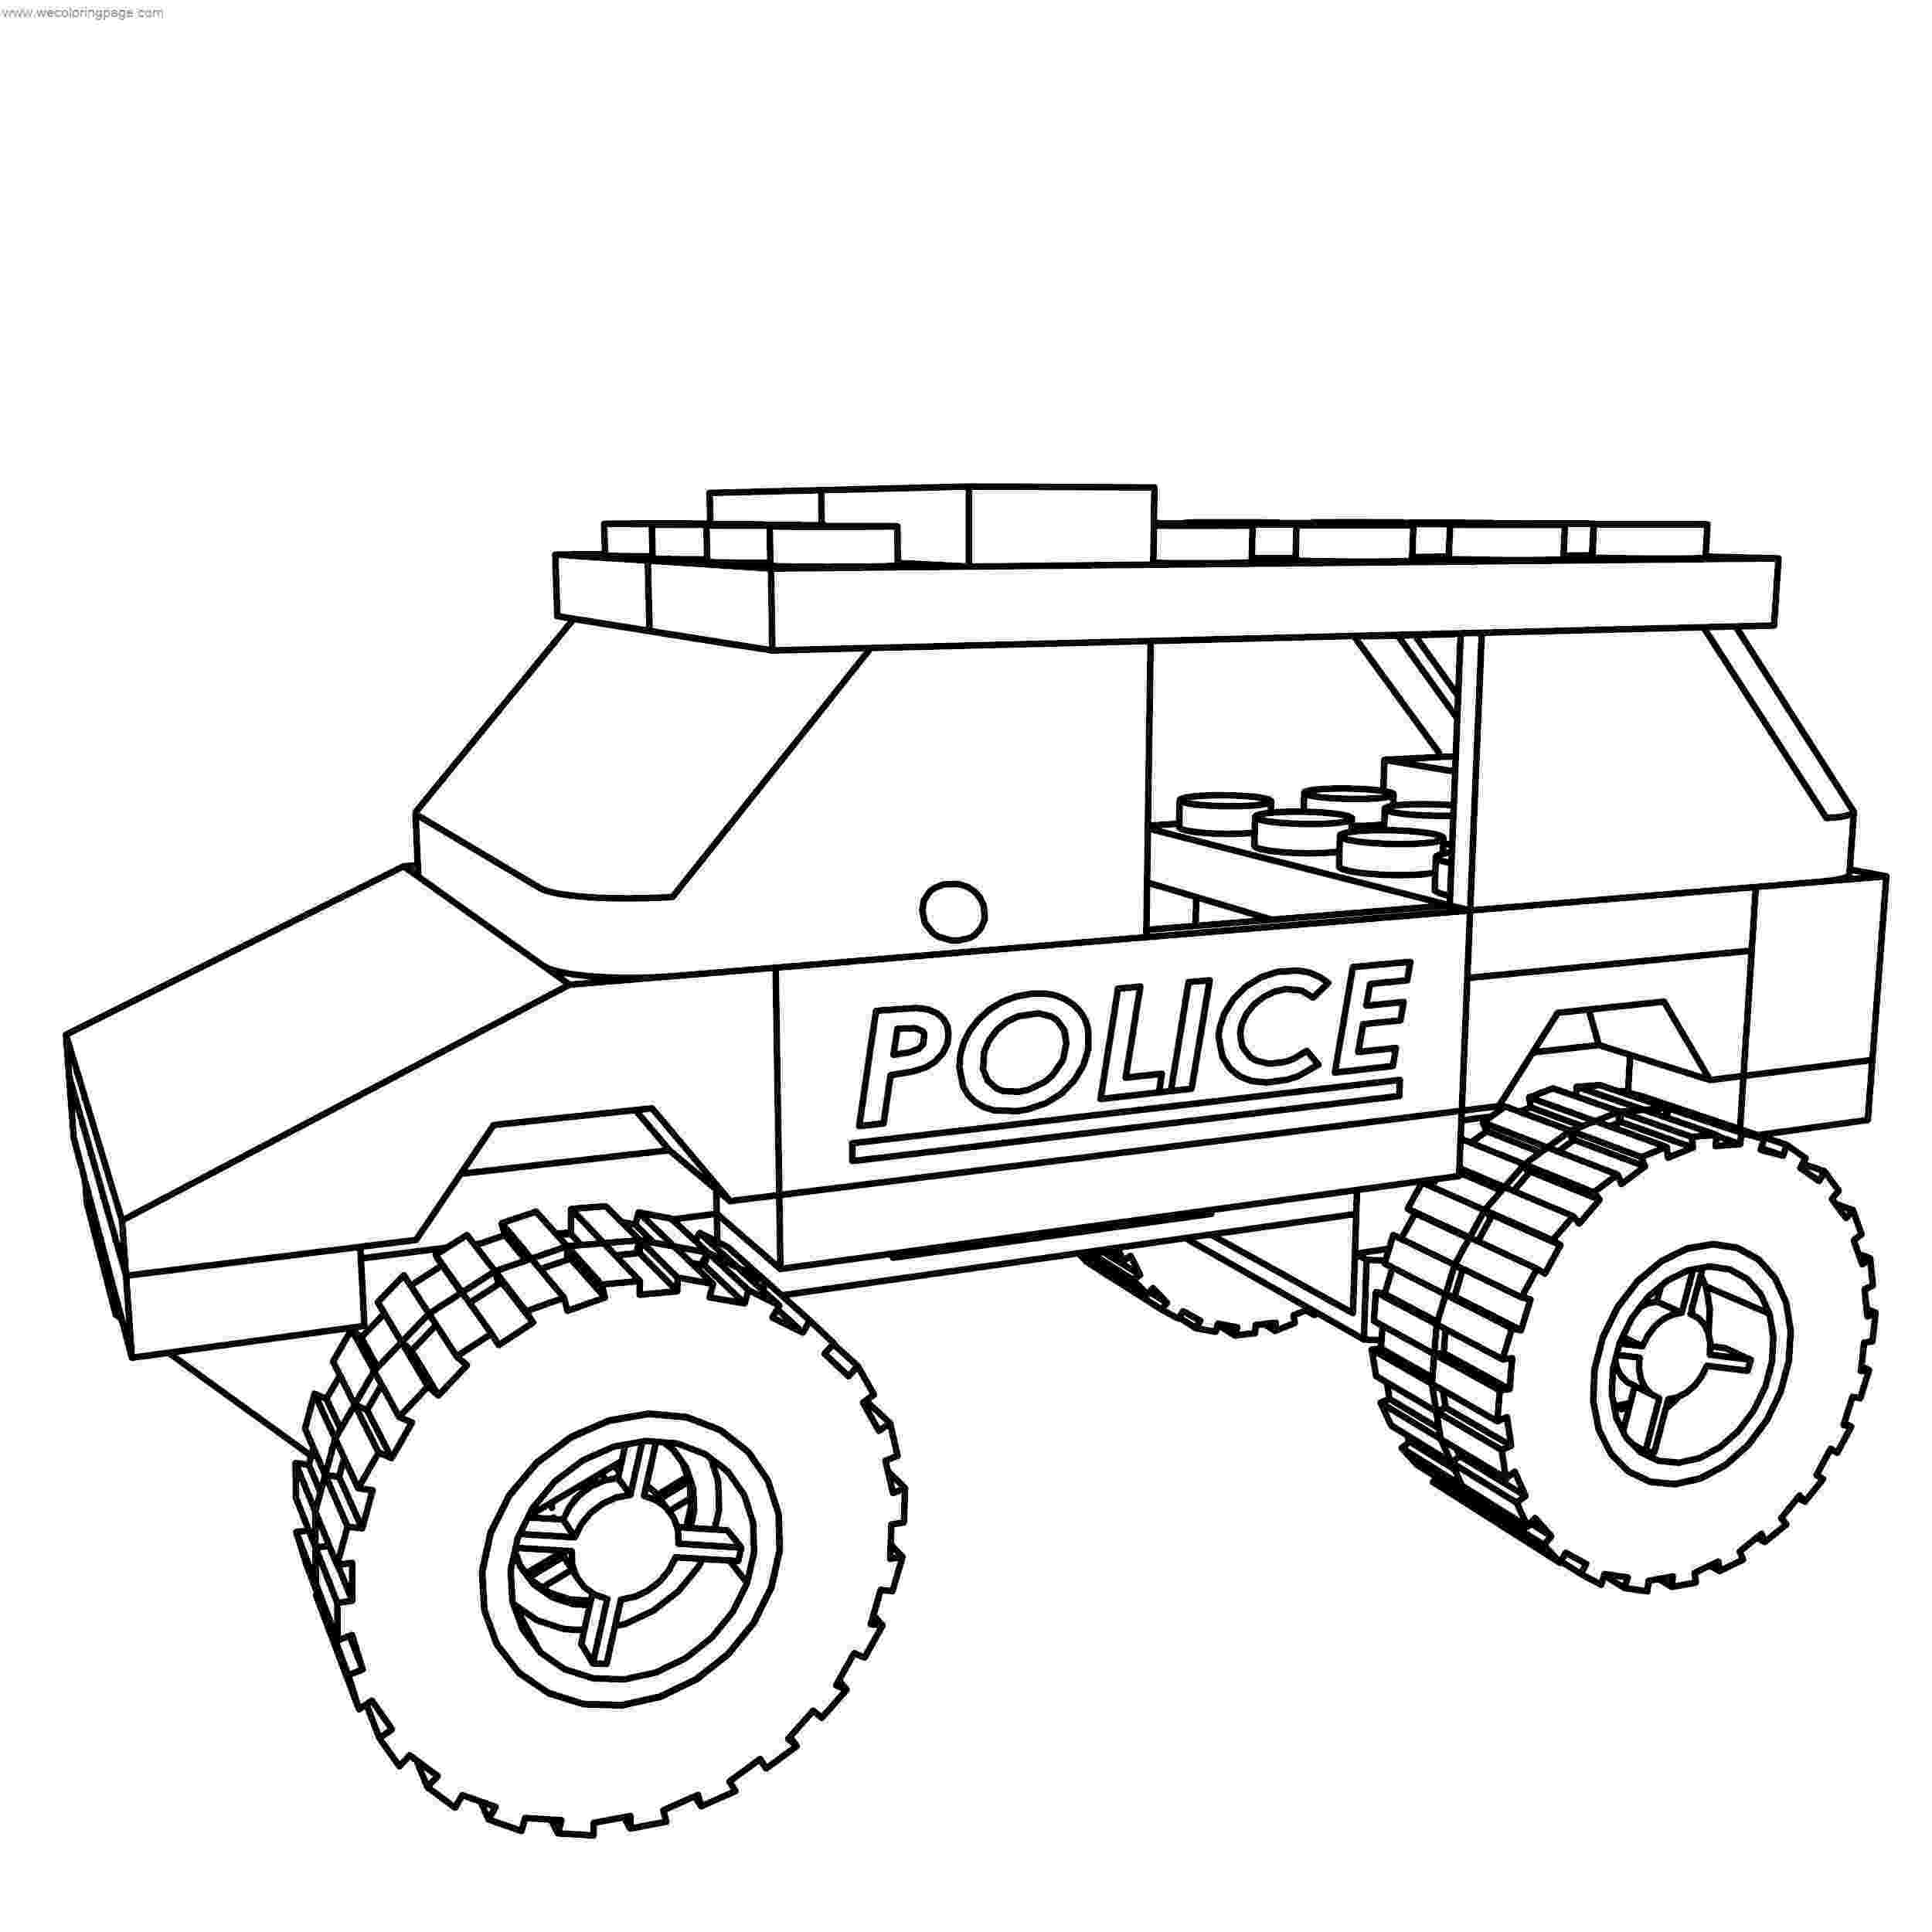 lego city police coloring pages lego coloring pages best coloring pages for kids coloring city lego pages police